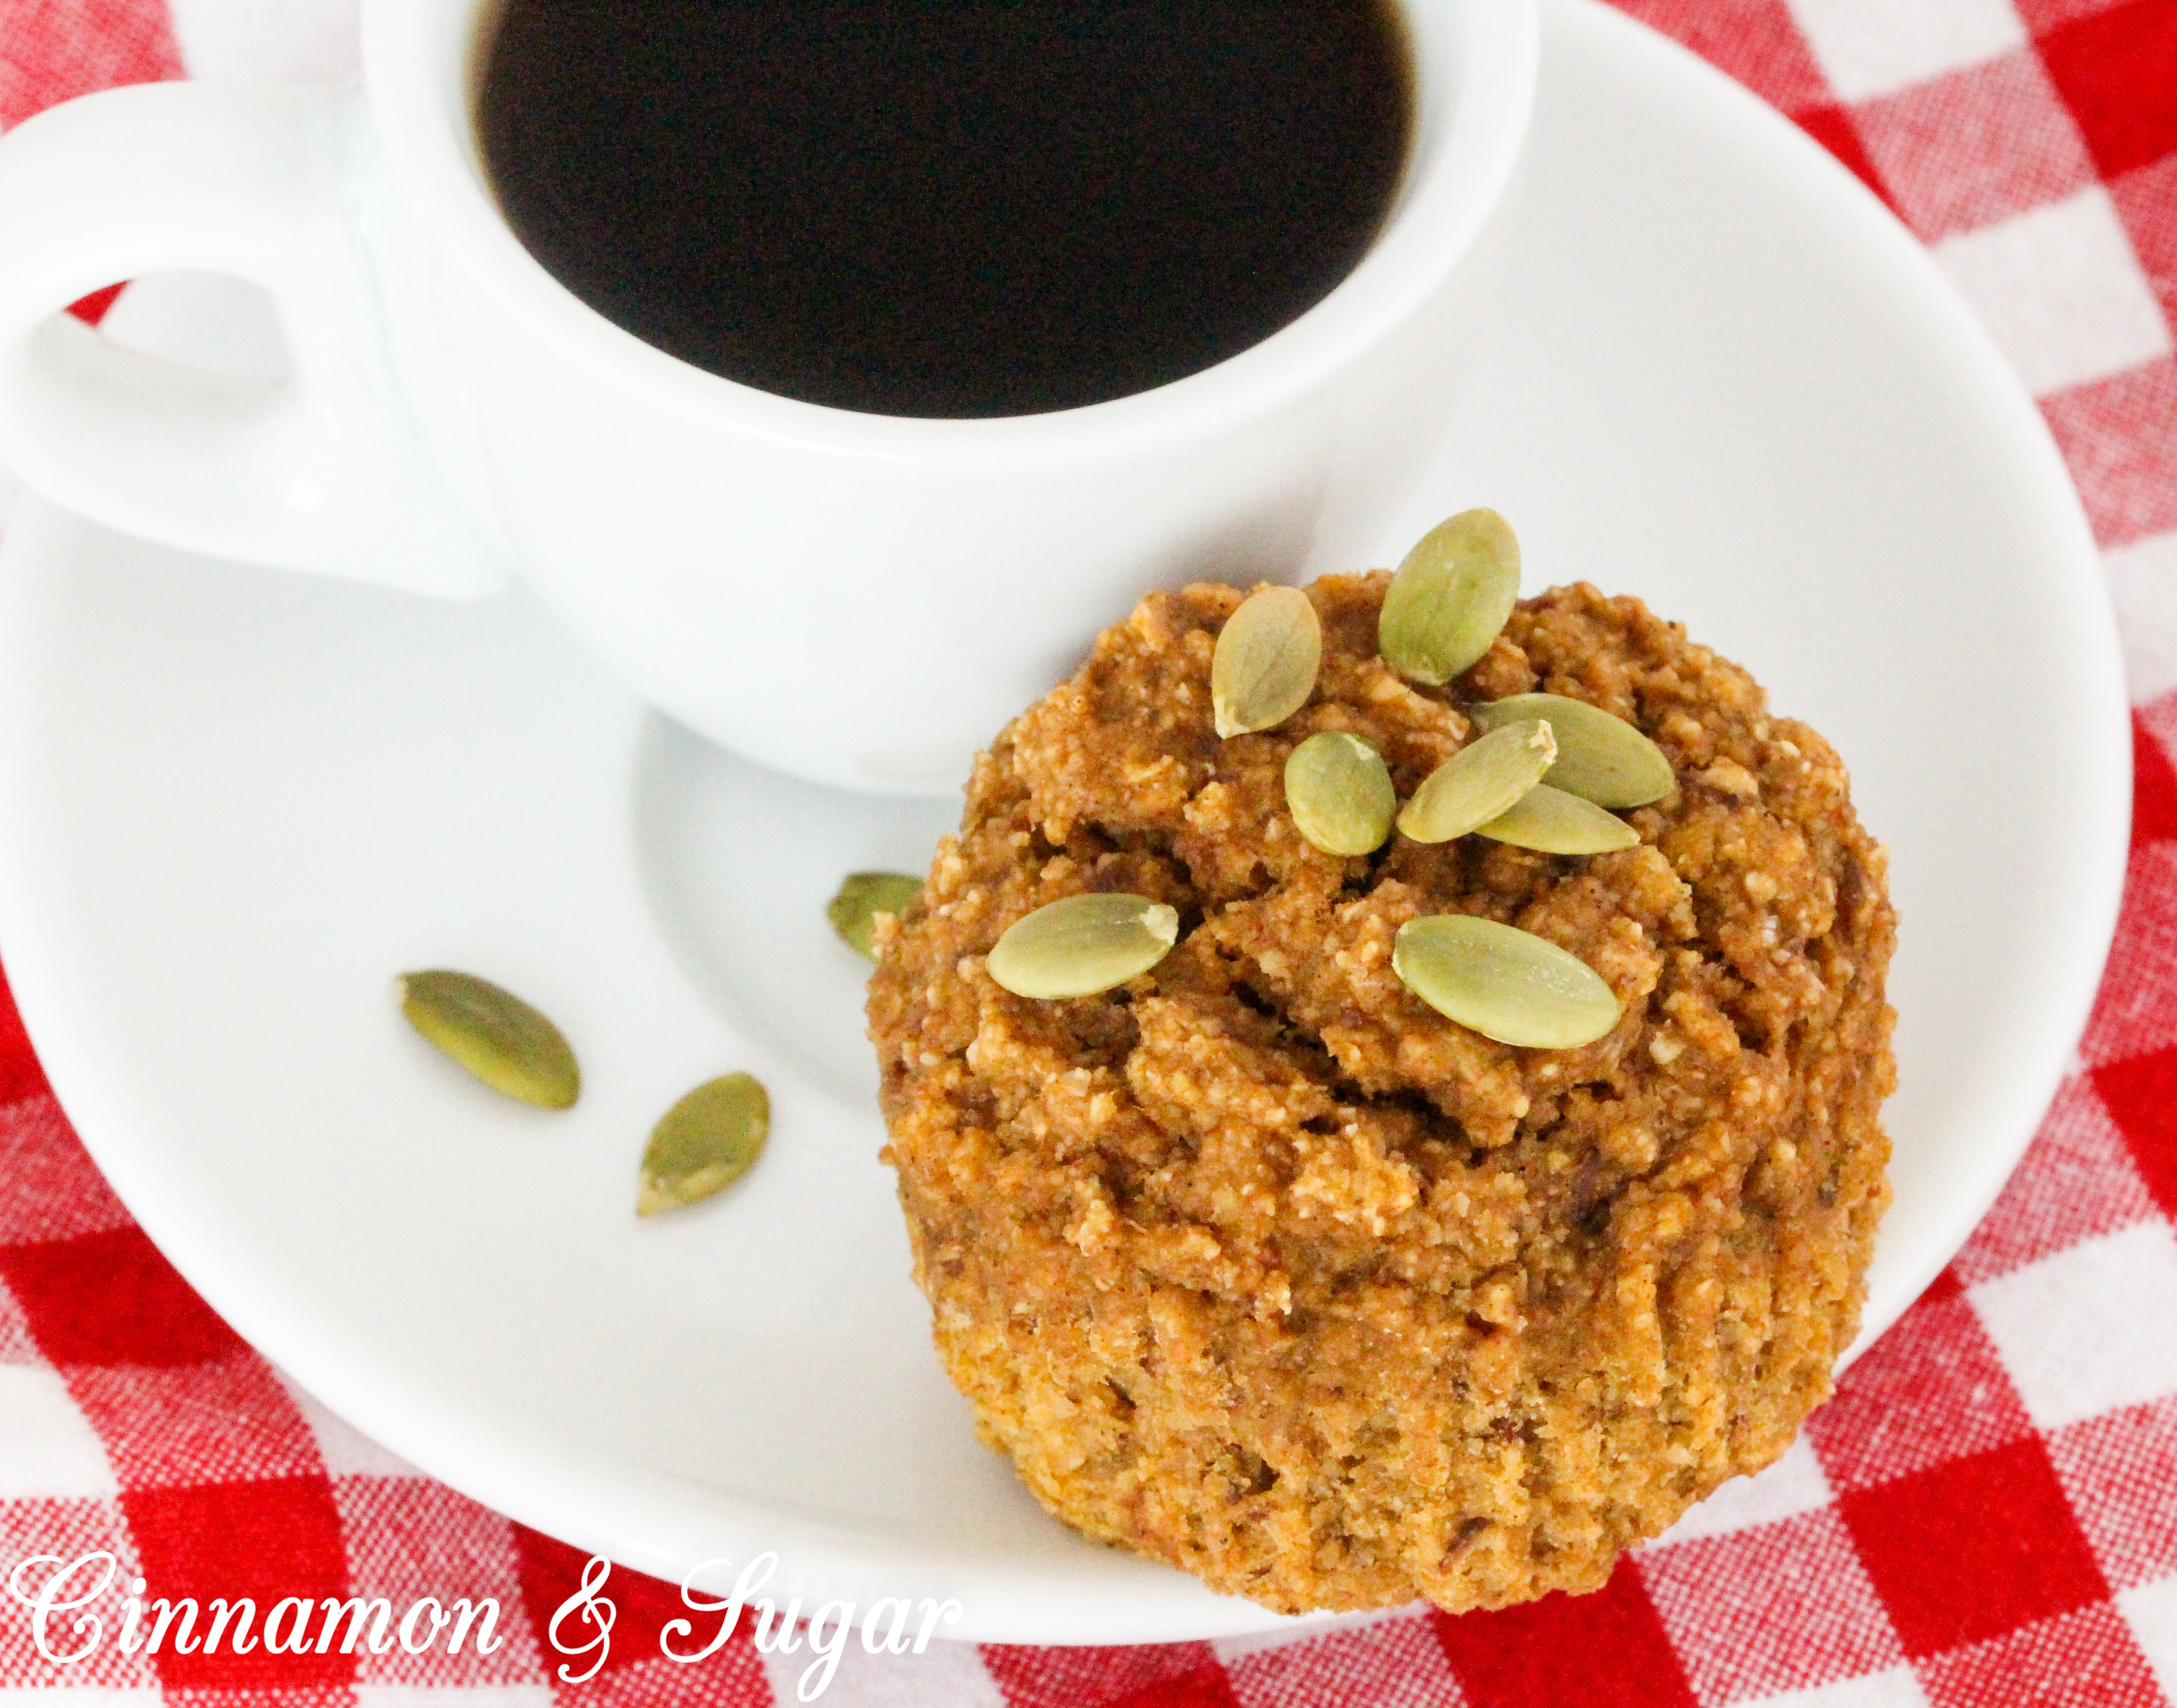 Both vegan and gluten-free, Pumpkin Quinoa Muffins caters not only to dietary restrictions but is a delicous, healthy treat for everyone who enjoys moist, yummy muffins! Recipe shared with permission granted by Debra H. Goldstein, author of THREE TREATS TOO MANY.